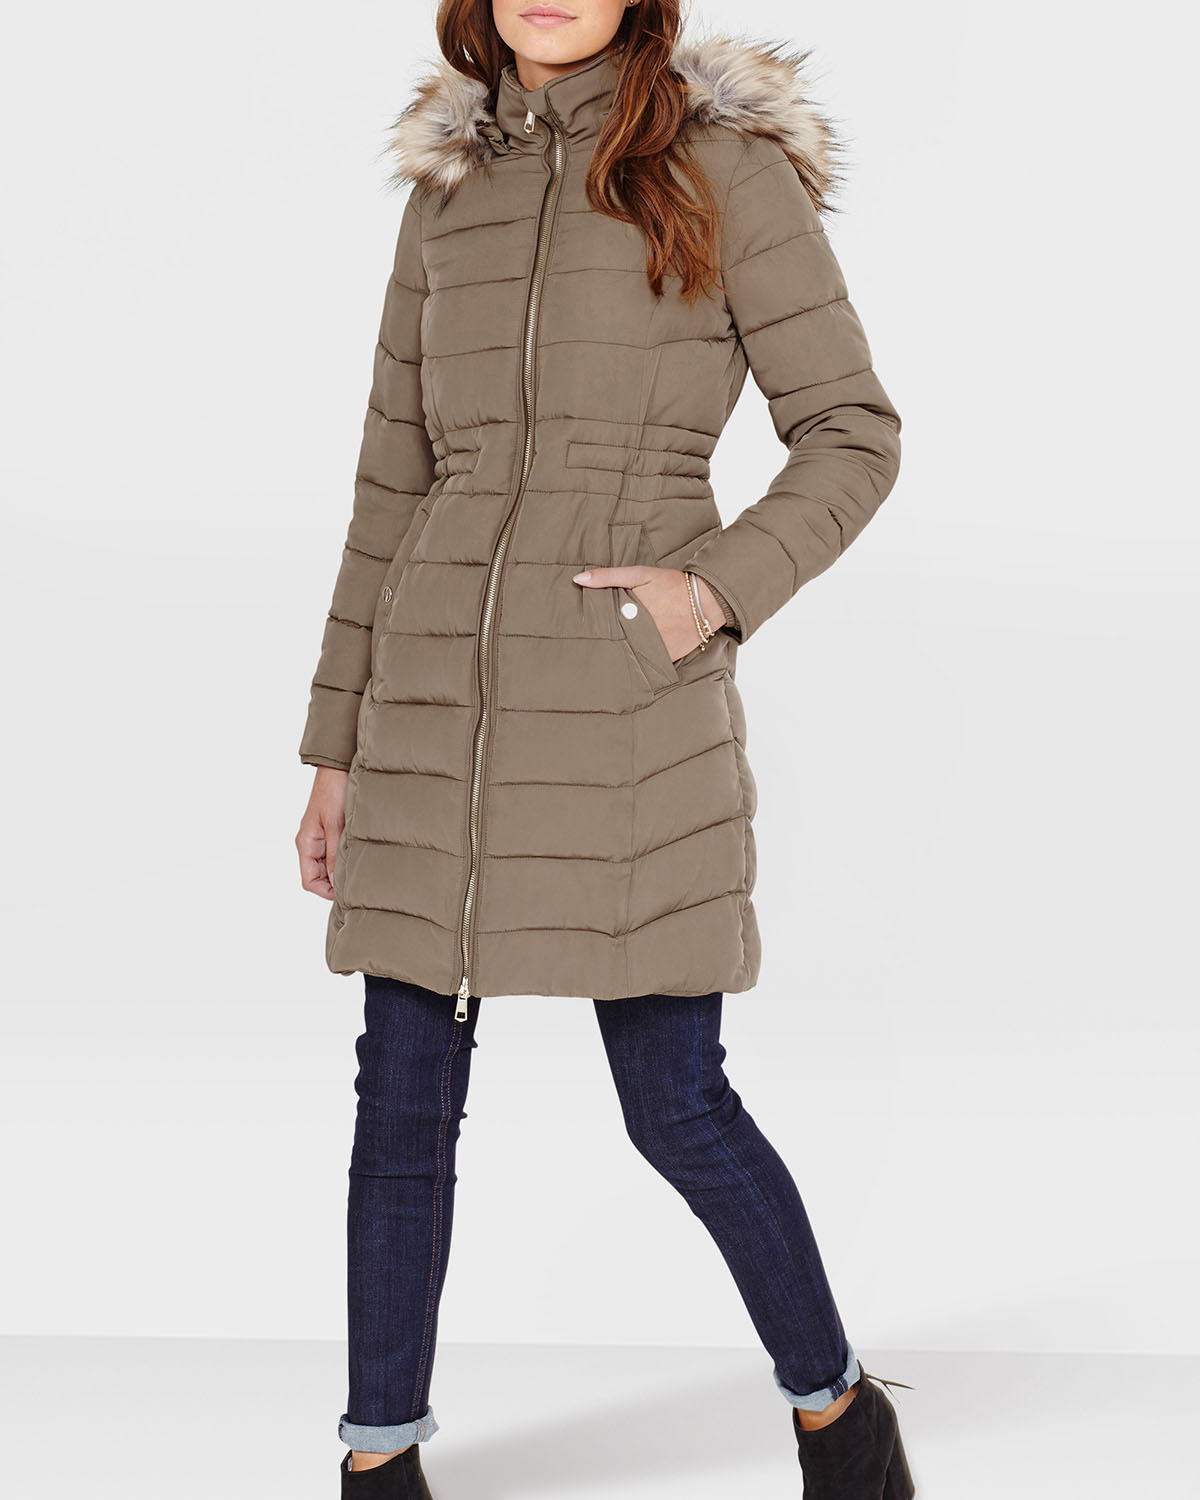 Lang Winterjas Dames.Dames Jas 78834002 We Fashion